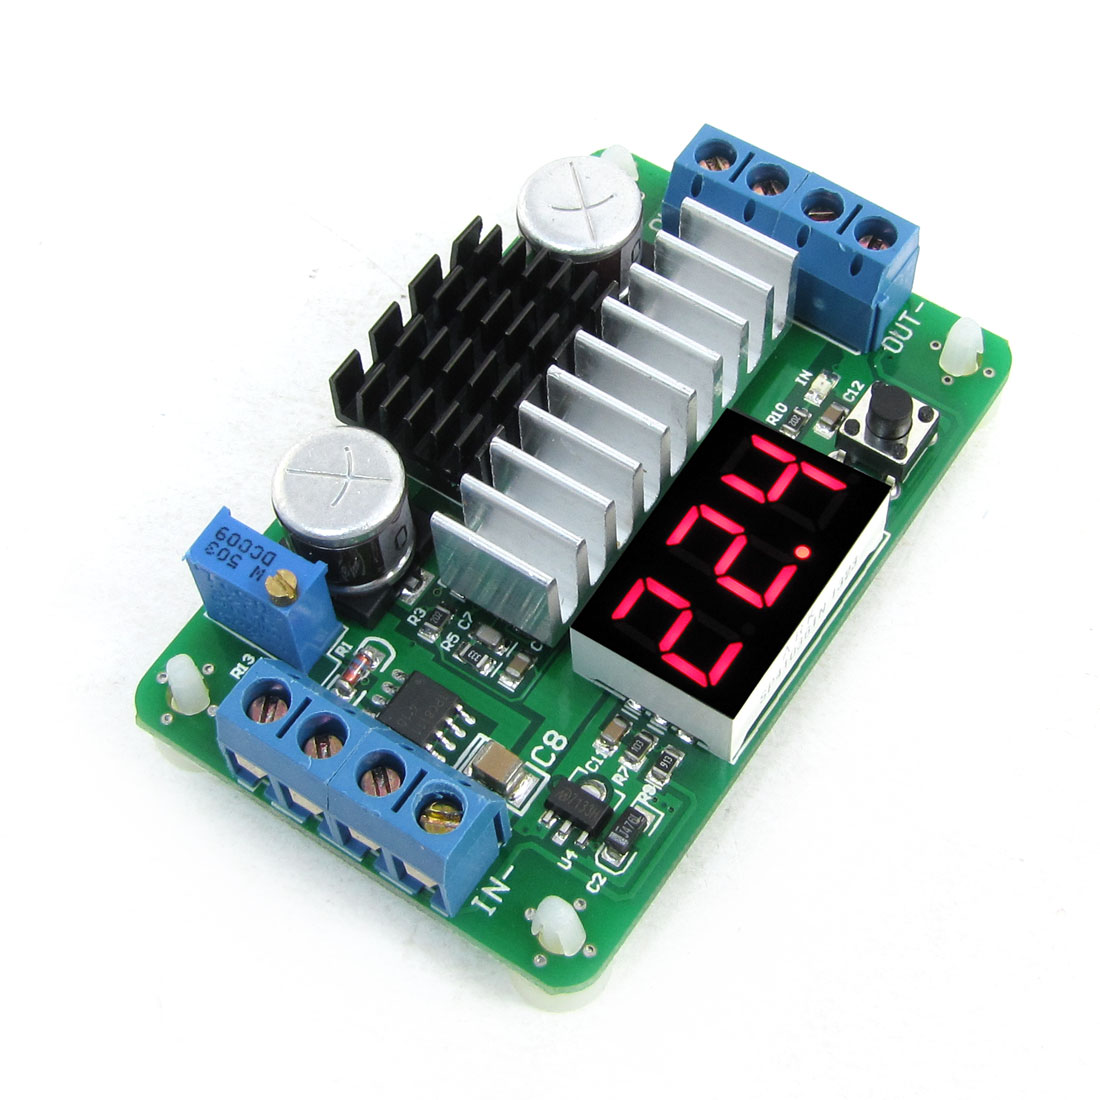 Red LED LTC1871 DC 3.5-30V to DC 3.5-30V Voltage Set up Boost Module